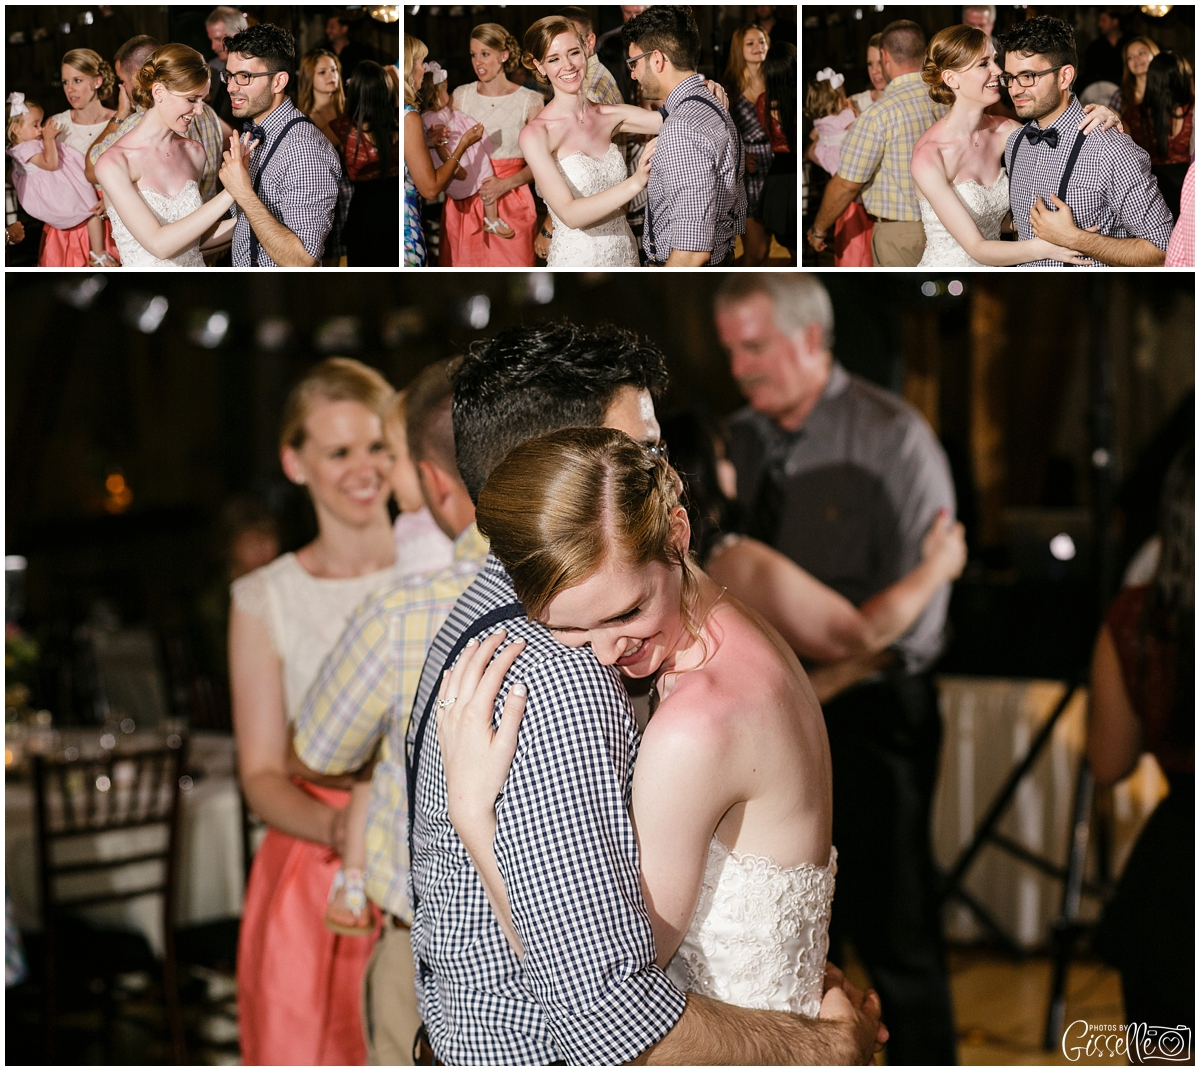 Hoosier_Grove_Barn_Wedding80.jpg